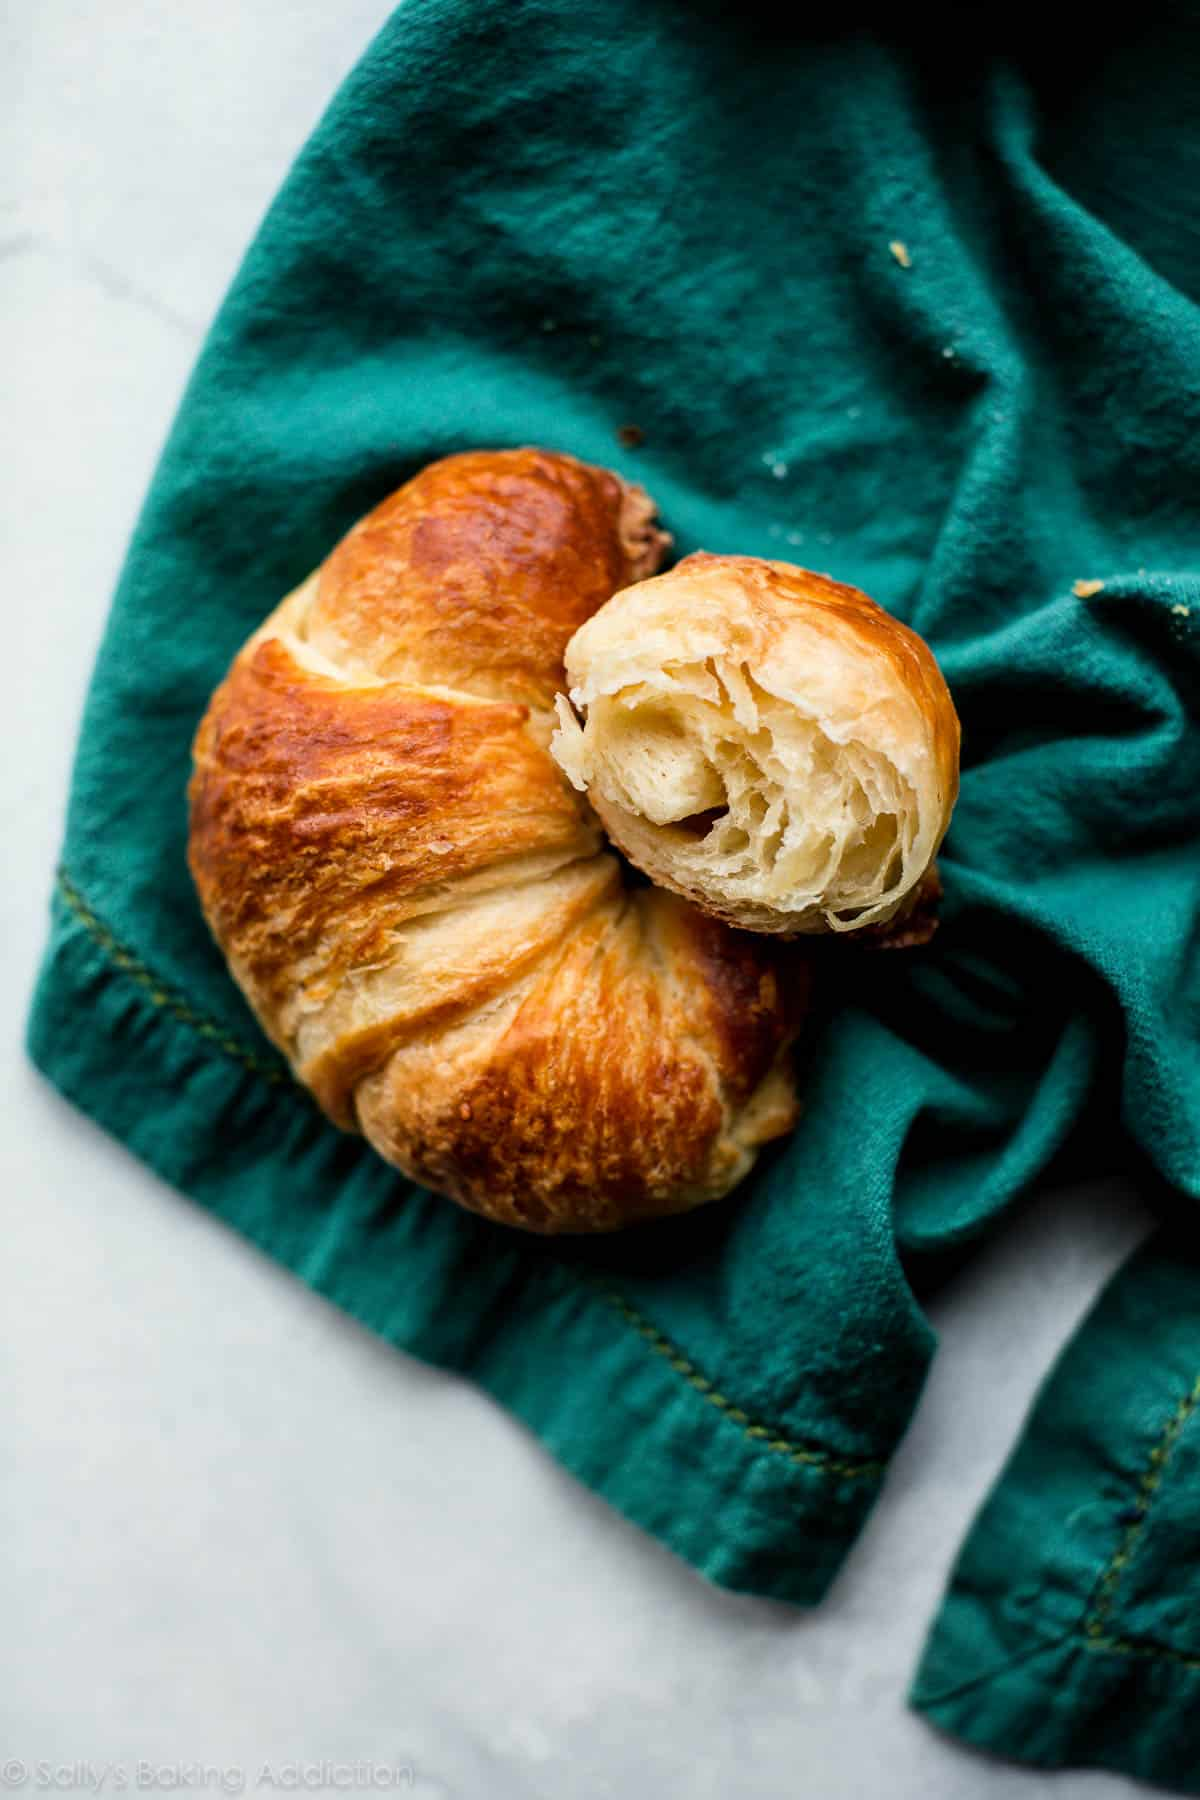 Buttery, flaky, and perfect homemade croissants. Homemade croissant recipe, step pictures, and a how-to video on sallysbakingaddiction.com